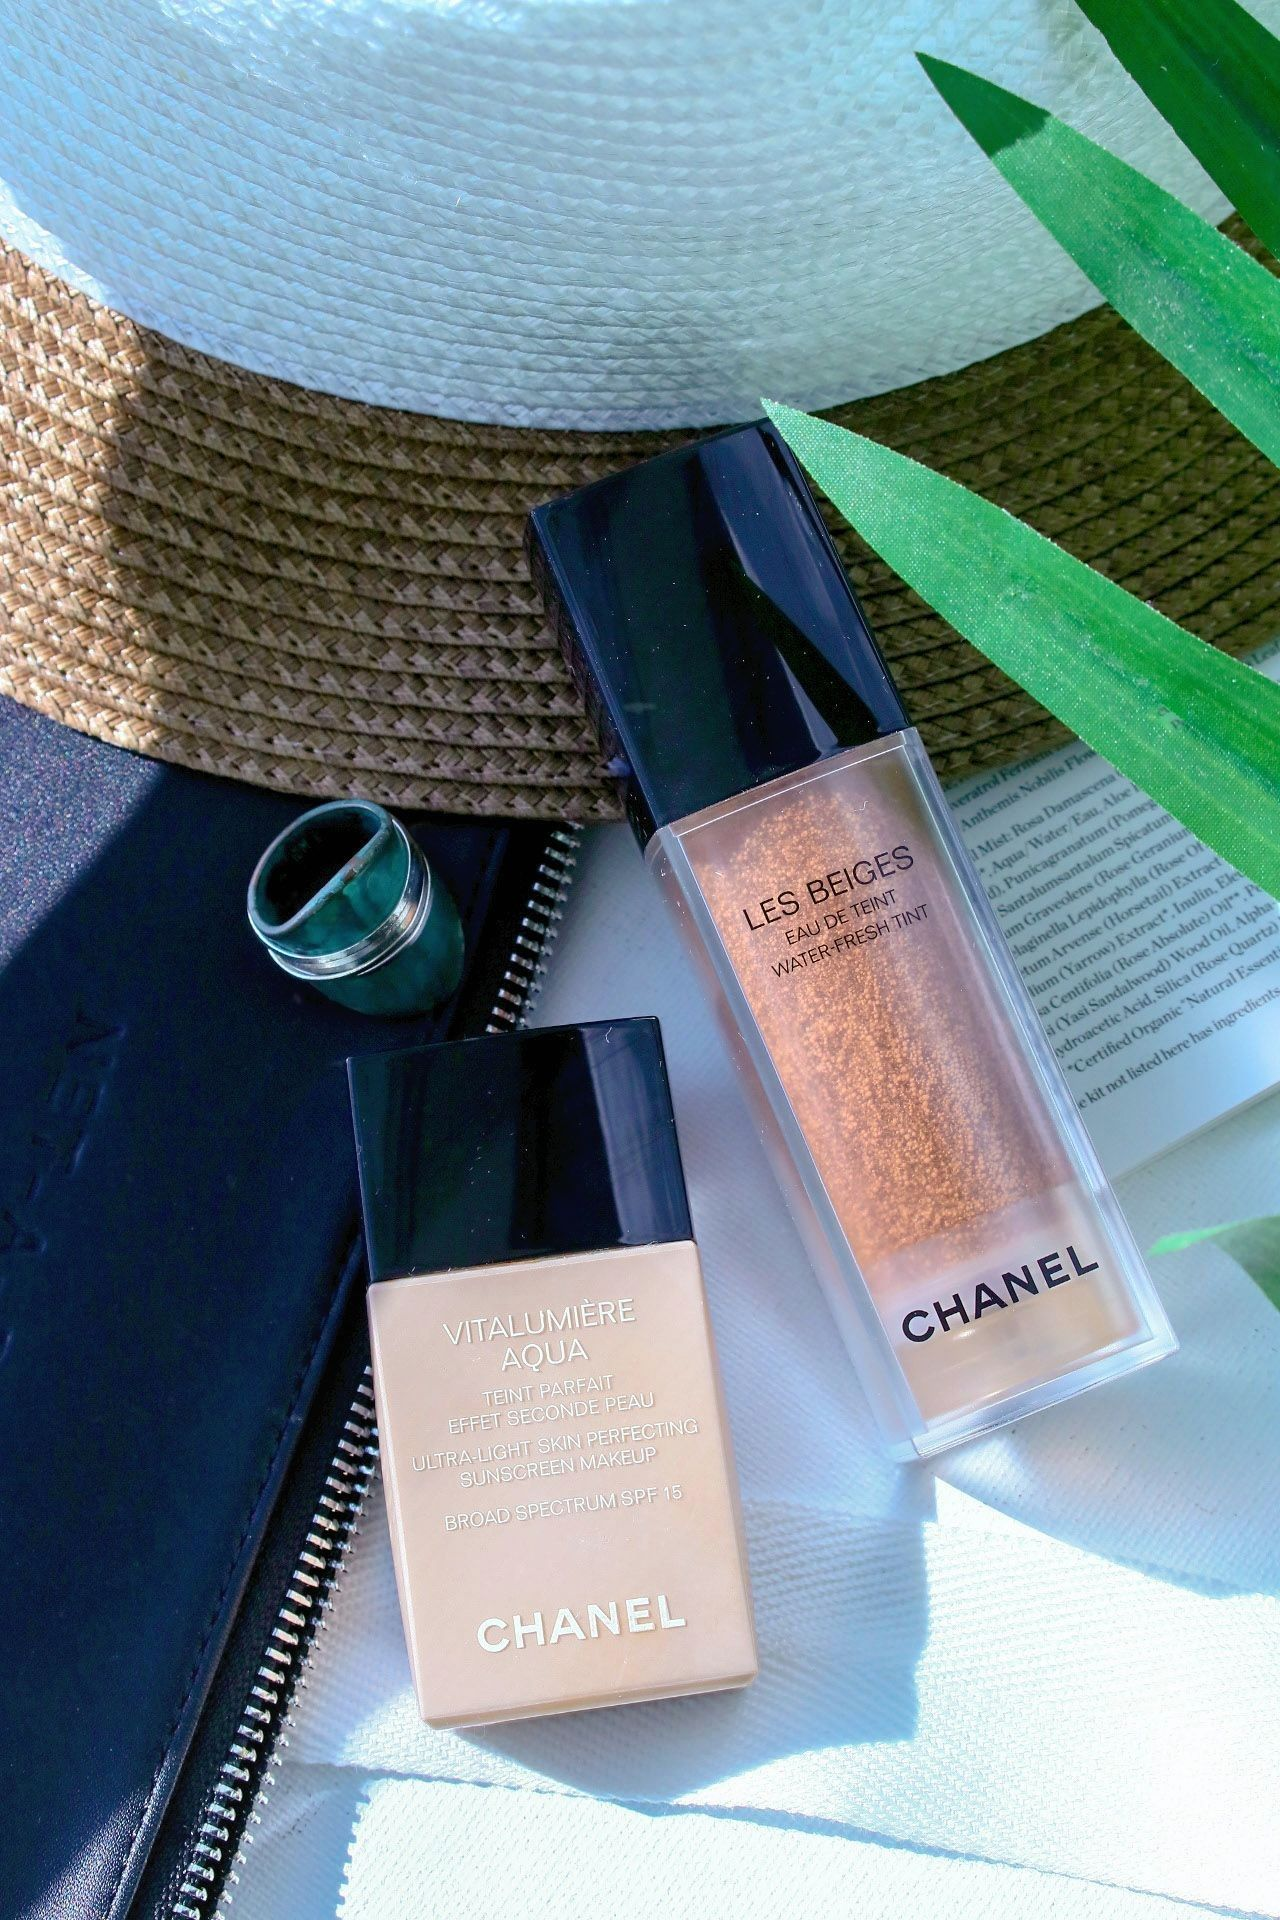 Chanel Les Beiges Natural Eyeshadow Palette and Water